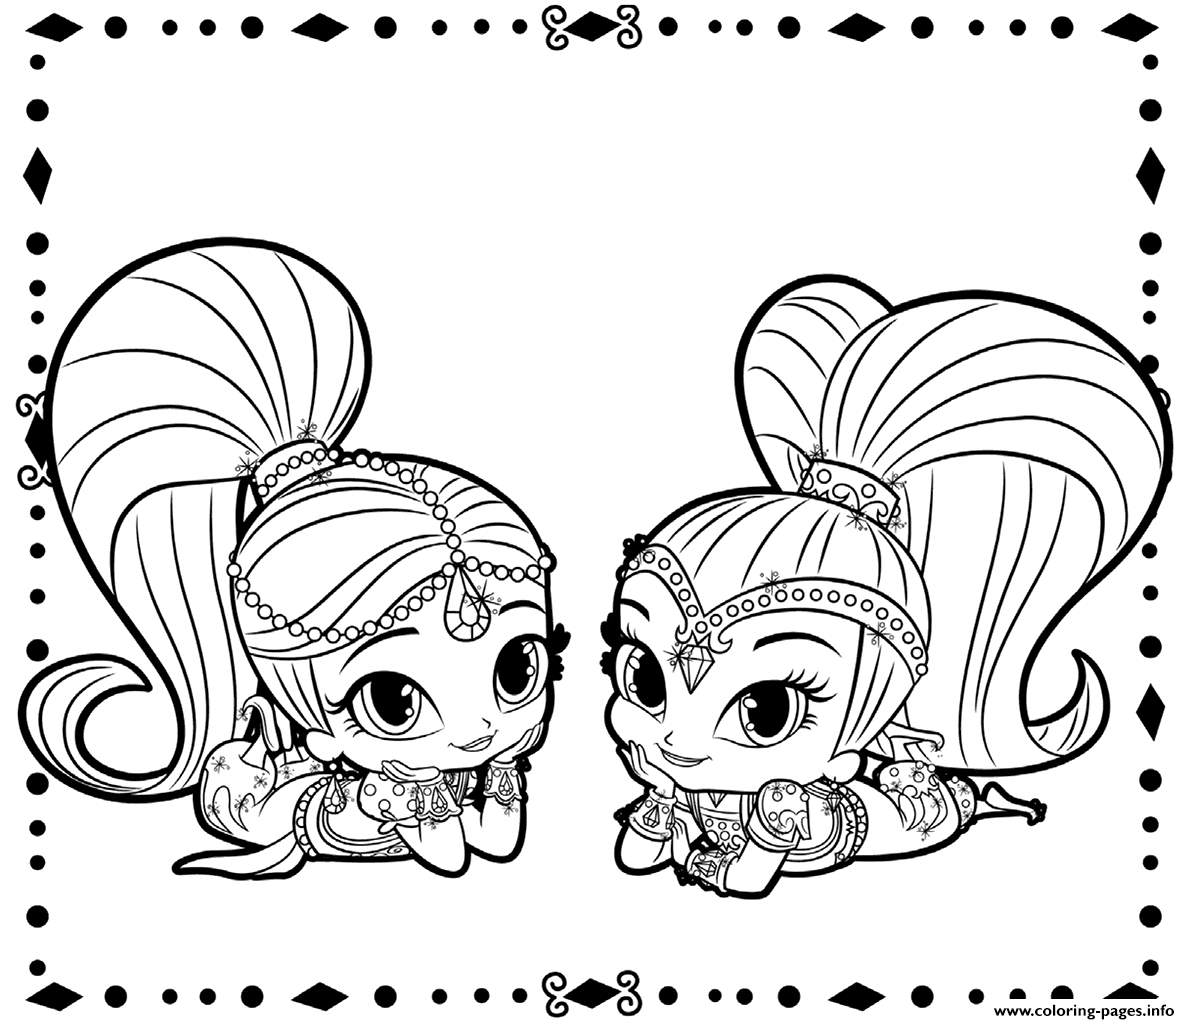 Shimmer And Shine Coloring Pages To Print Shimmer And Shine Coloring Pages Printable